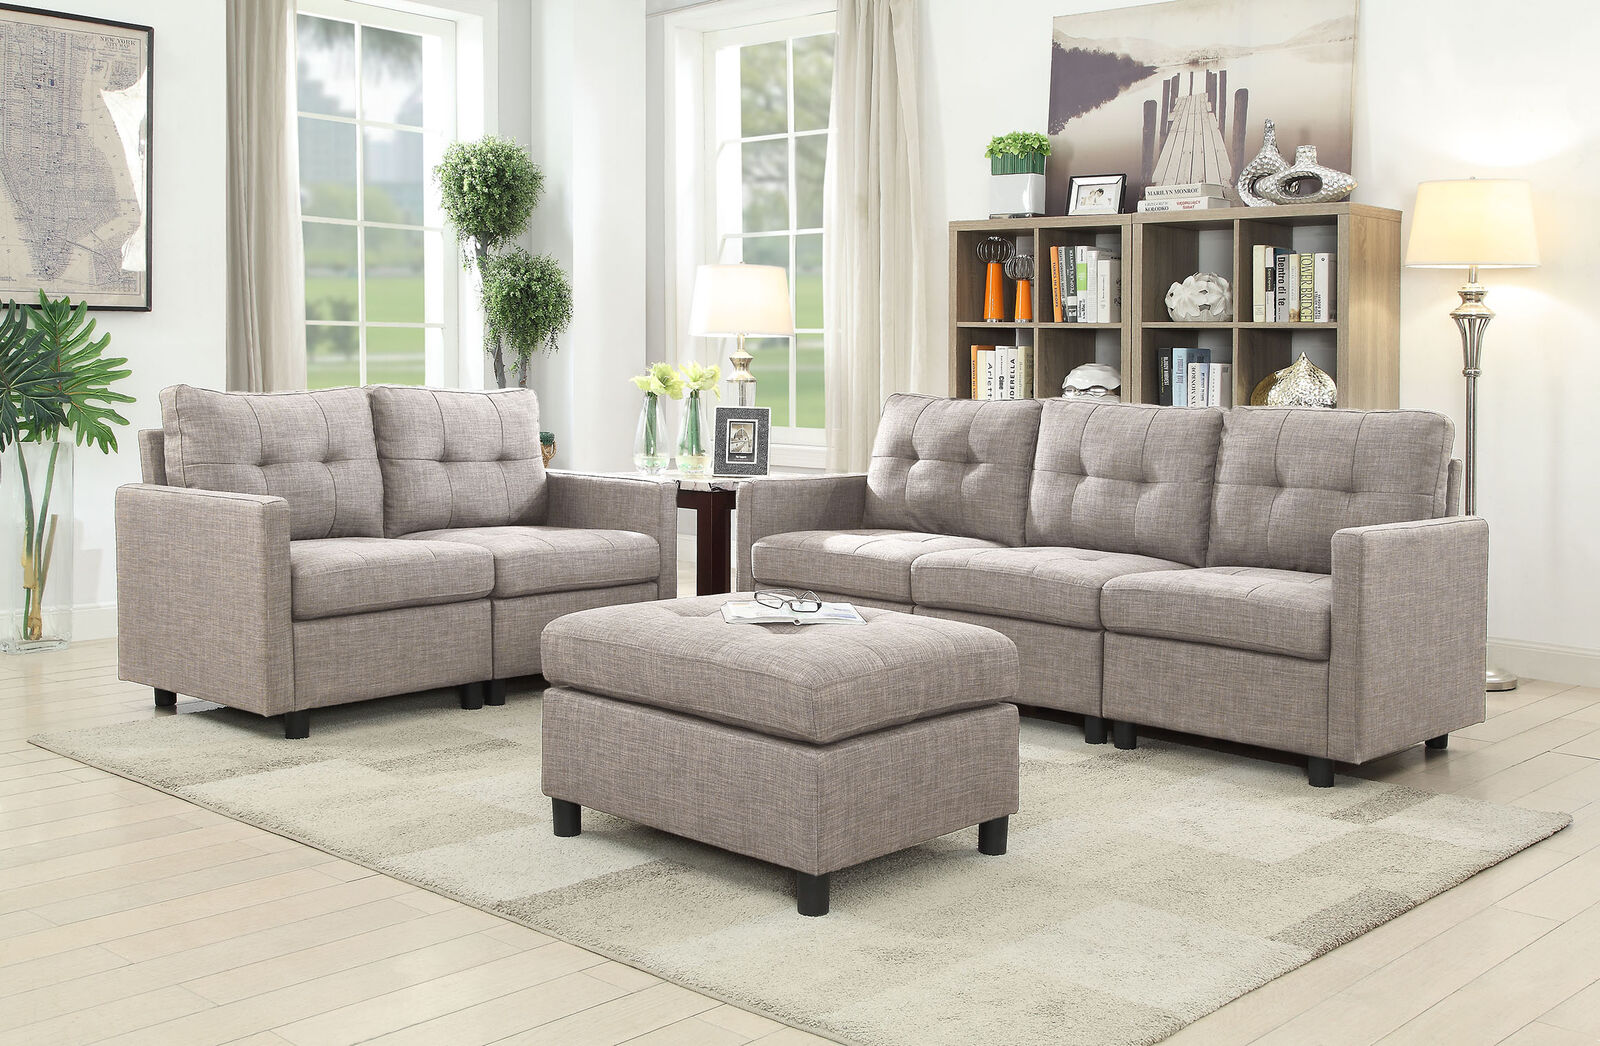 7 Pcs Contemporary Sectional Sofa Set Couch Microsuede Reversible Chaise Black